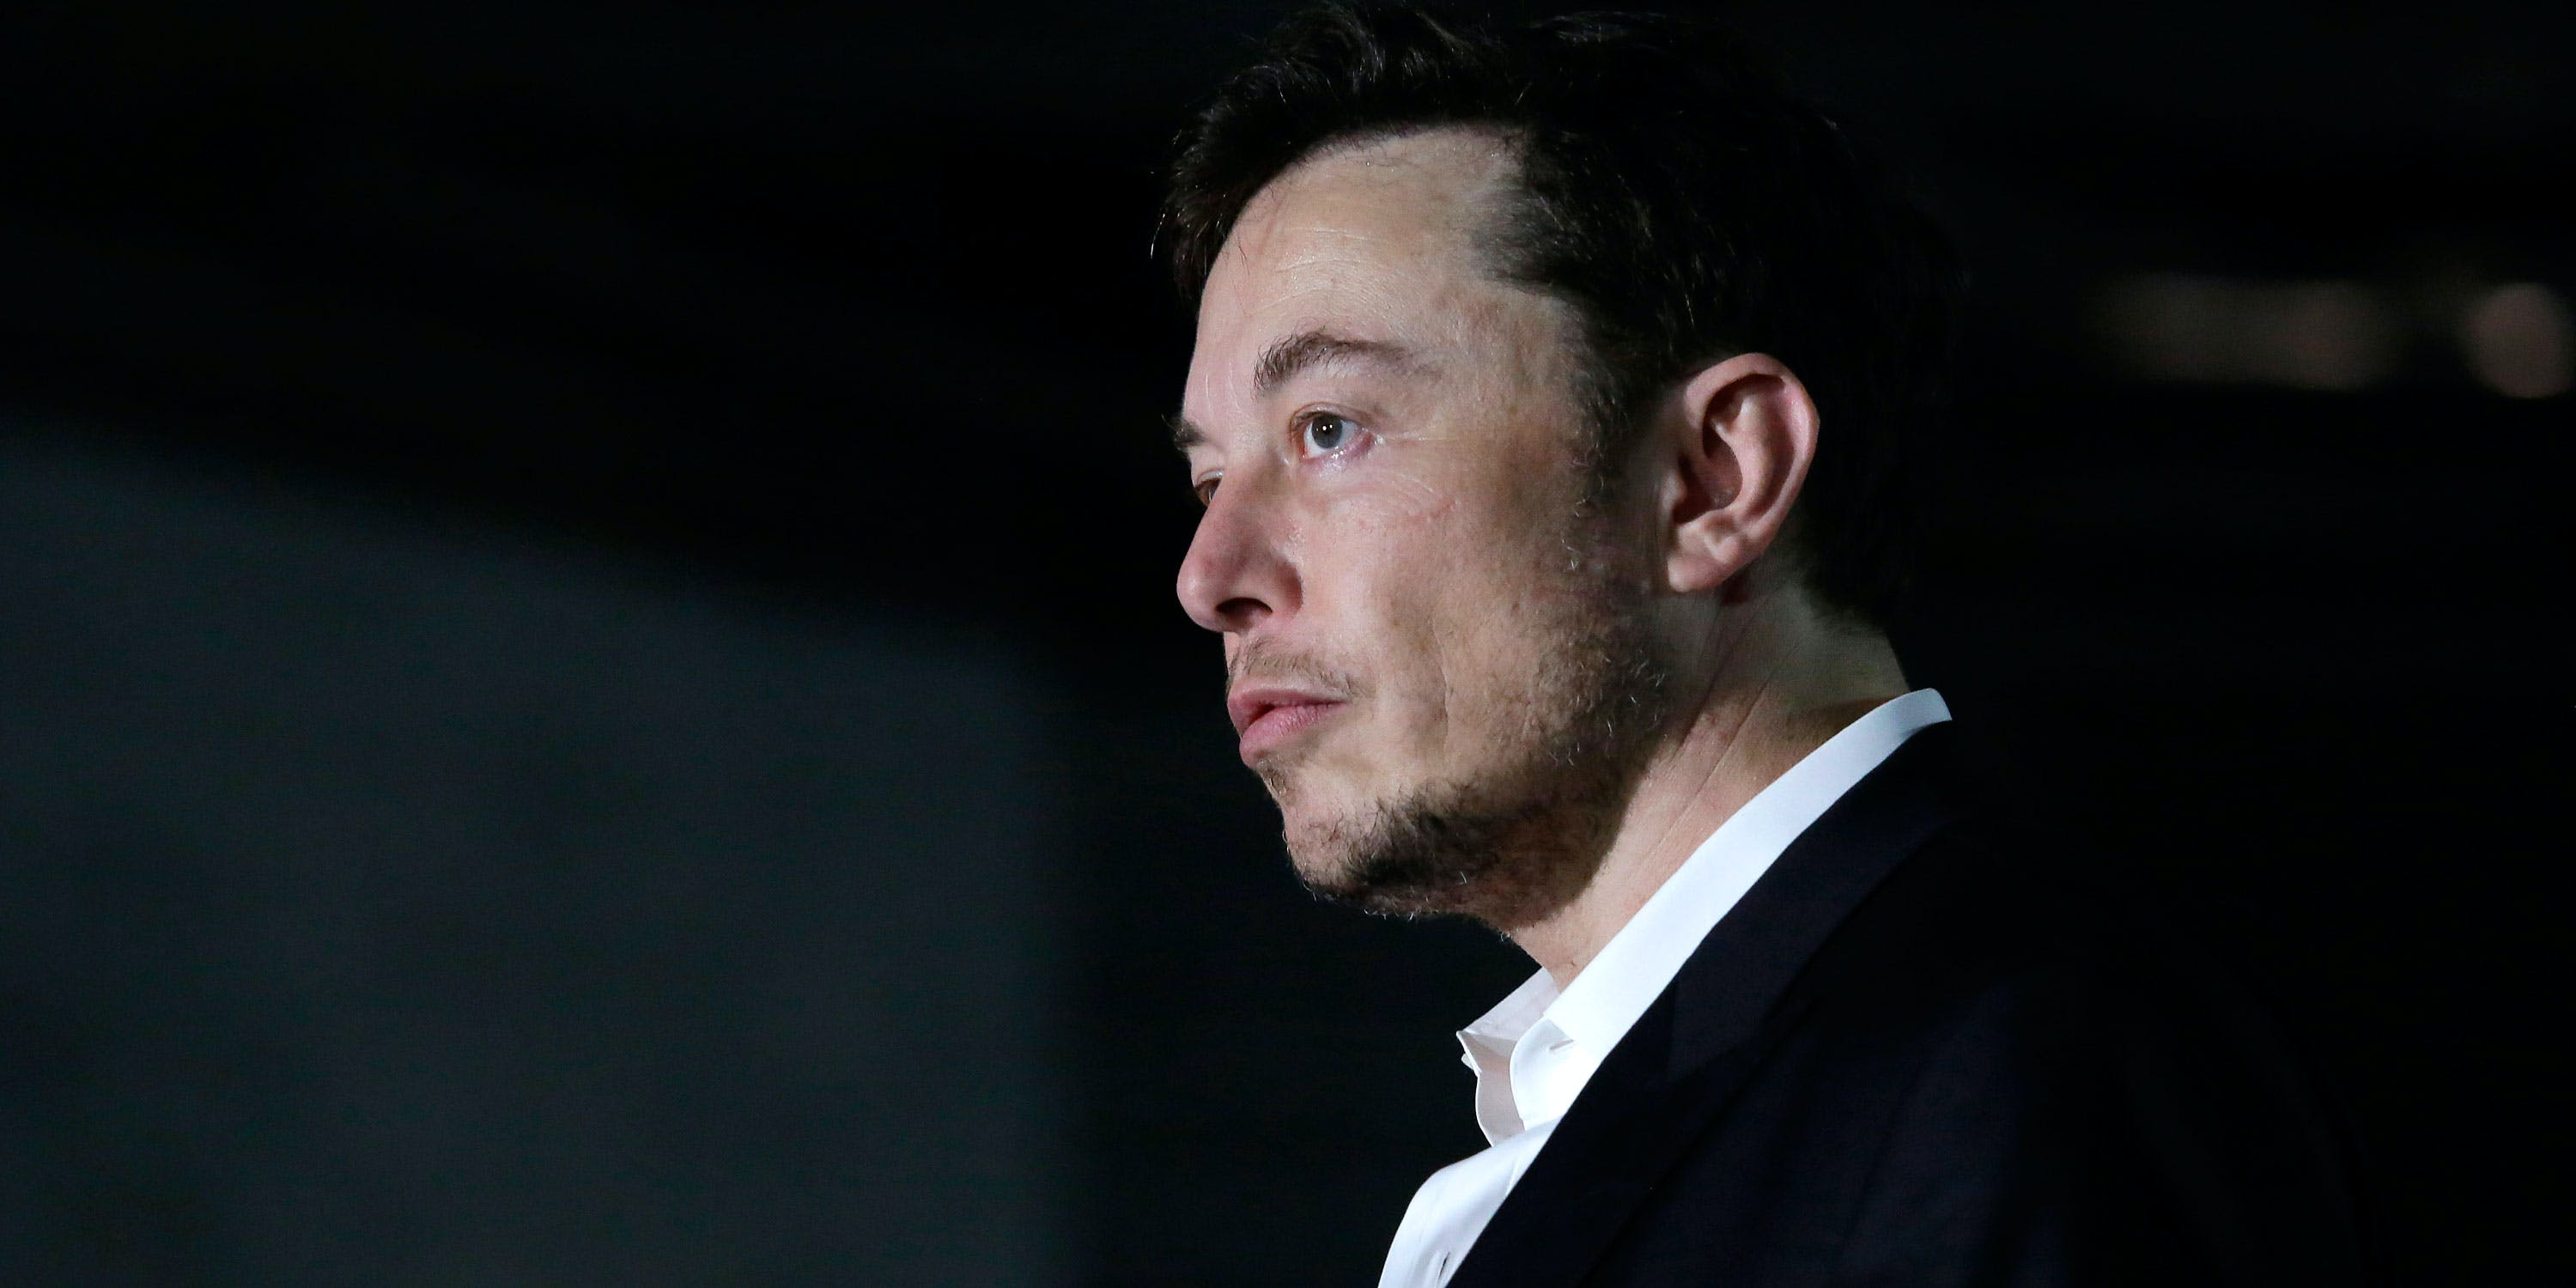 Engineer and tech entrepreneur Elon Musk of The Boring Company listens as Chicago Mayor Rahm Emanuel talks about constructing a high speed transit tunnel at Block 37 during a news conference on June 14, 2018 in Chicago, Illinois. Rumors surfaced last month that Elon Musk smokes weed, sparking concern among investors. After the rumors were confirmed on Friday, Tesla's stock plummeted. (Photo by Joshua Lott/Getty Images)